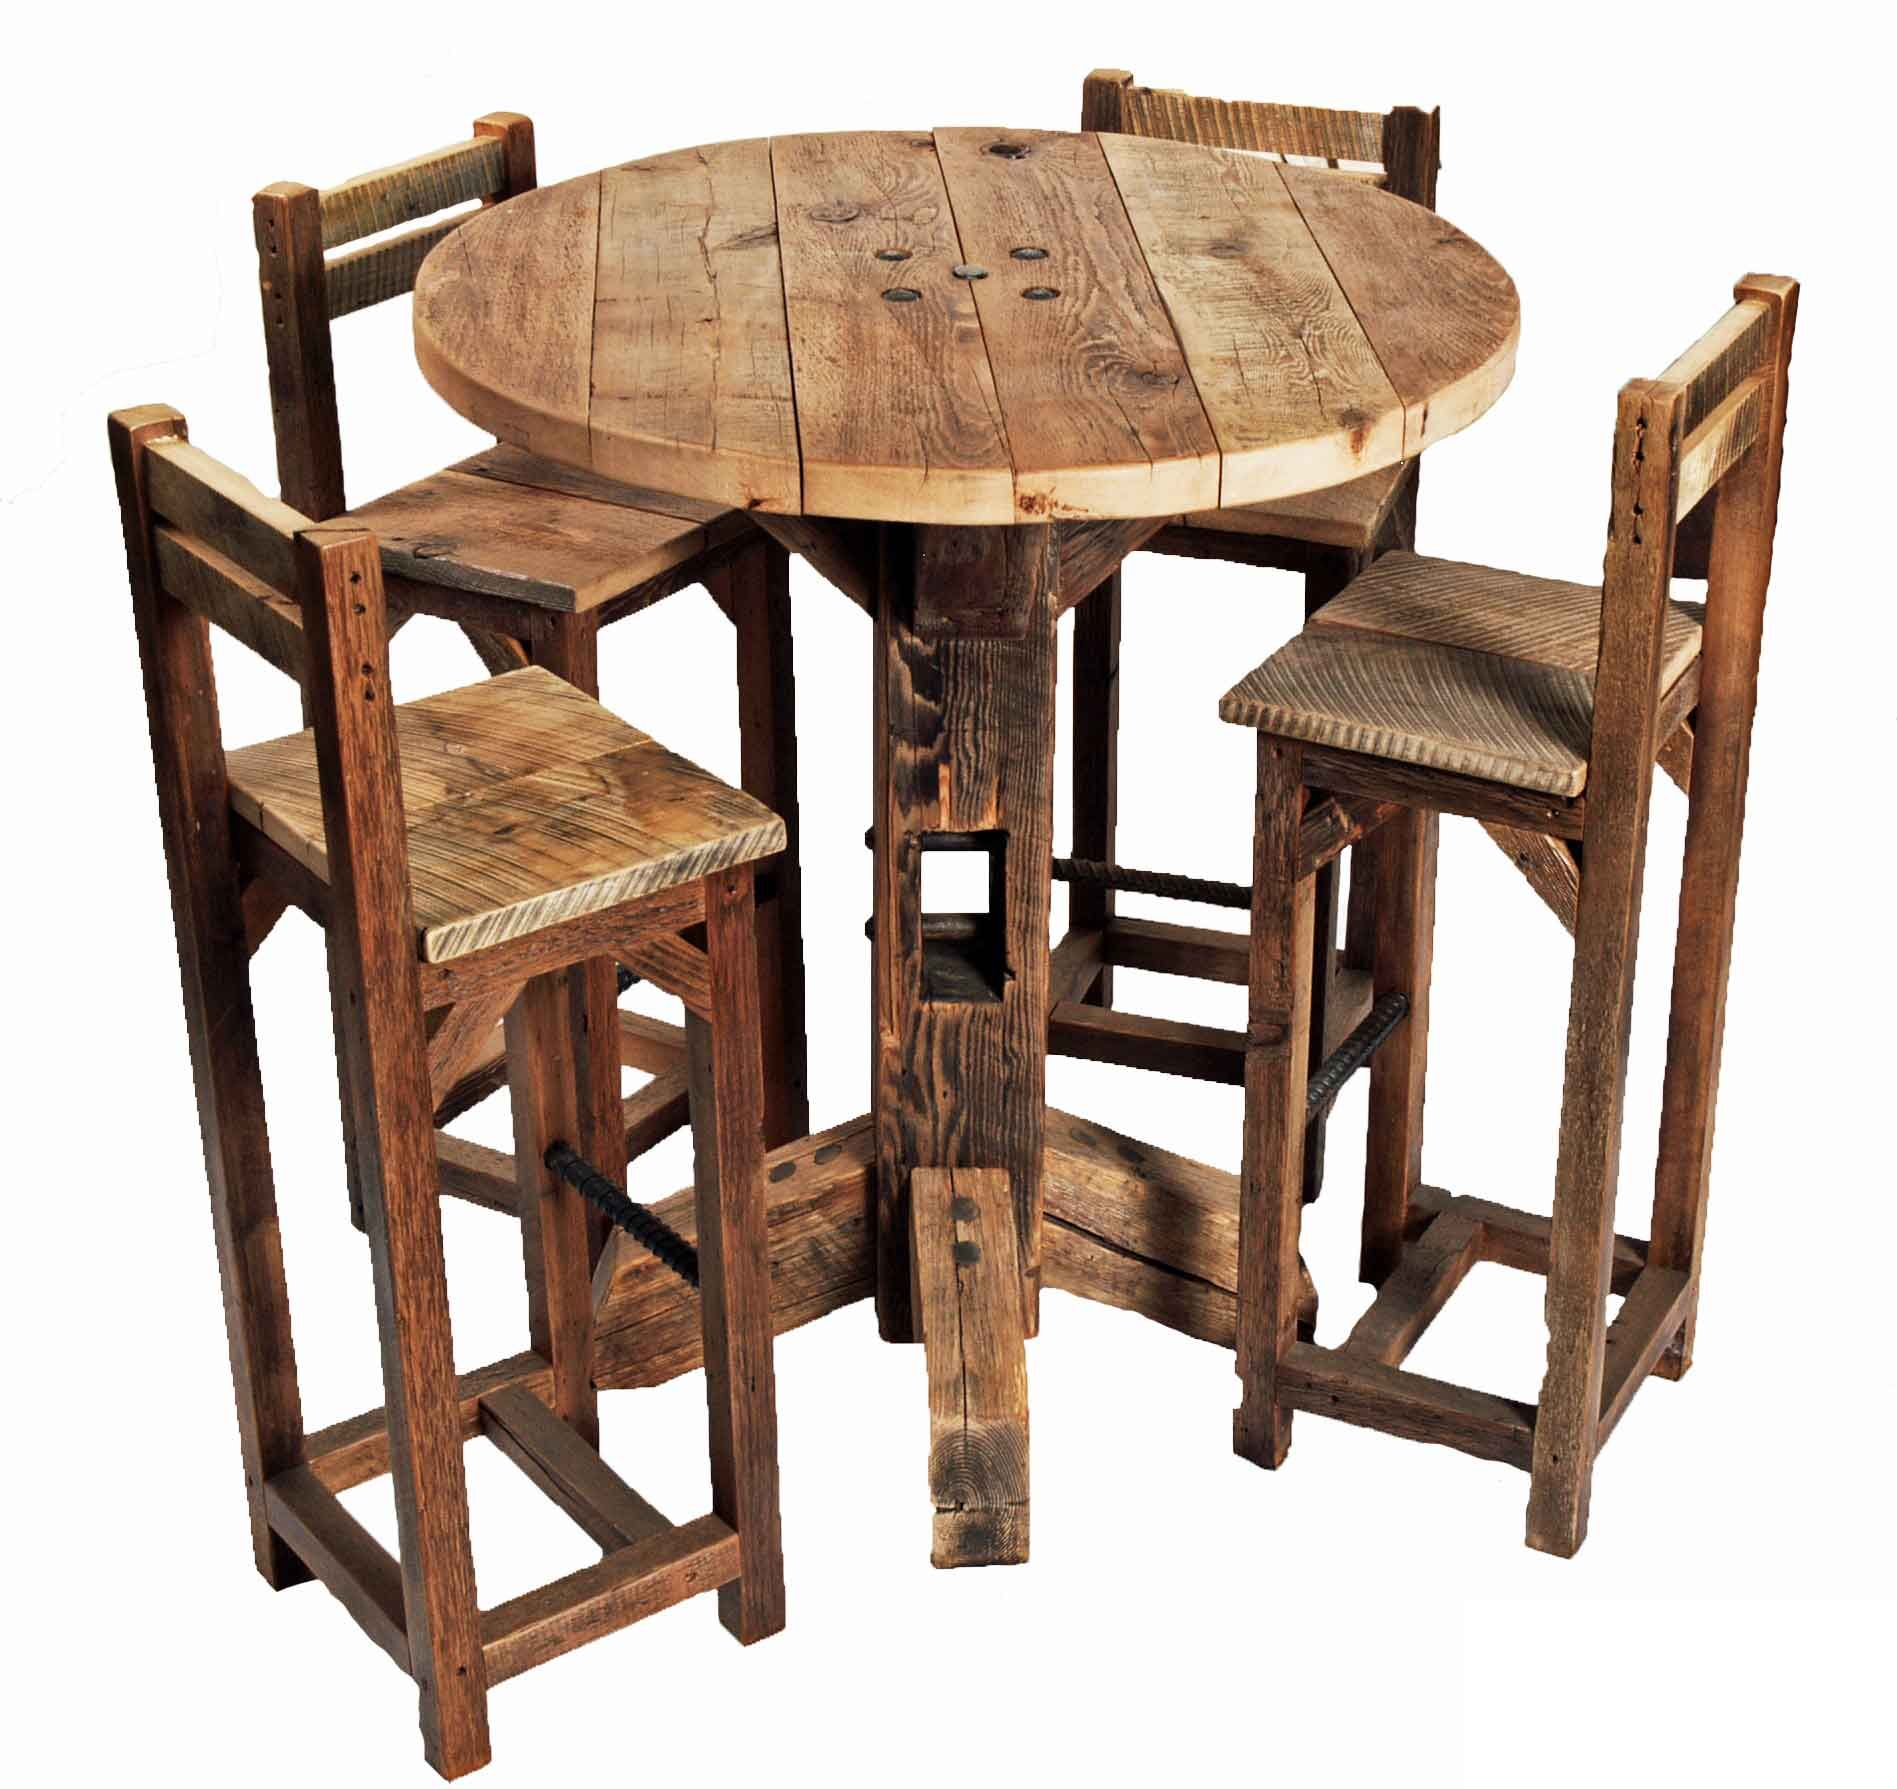 Rustic Stools Kitchens Furniture Old Rustic Small High Round Top Kitchen Table